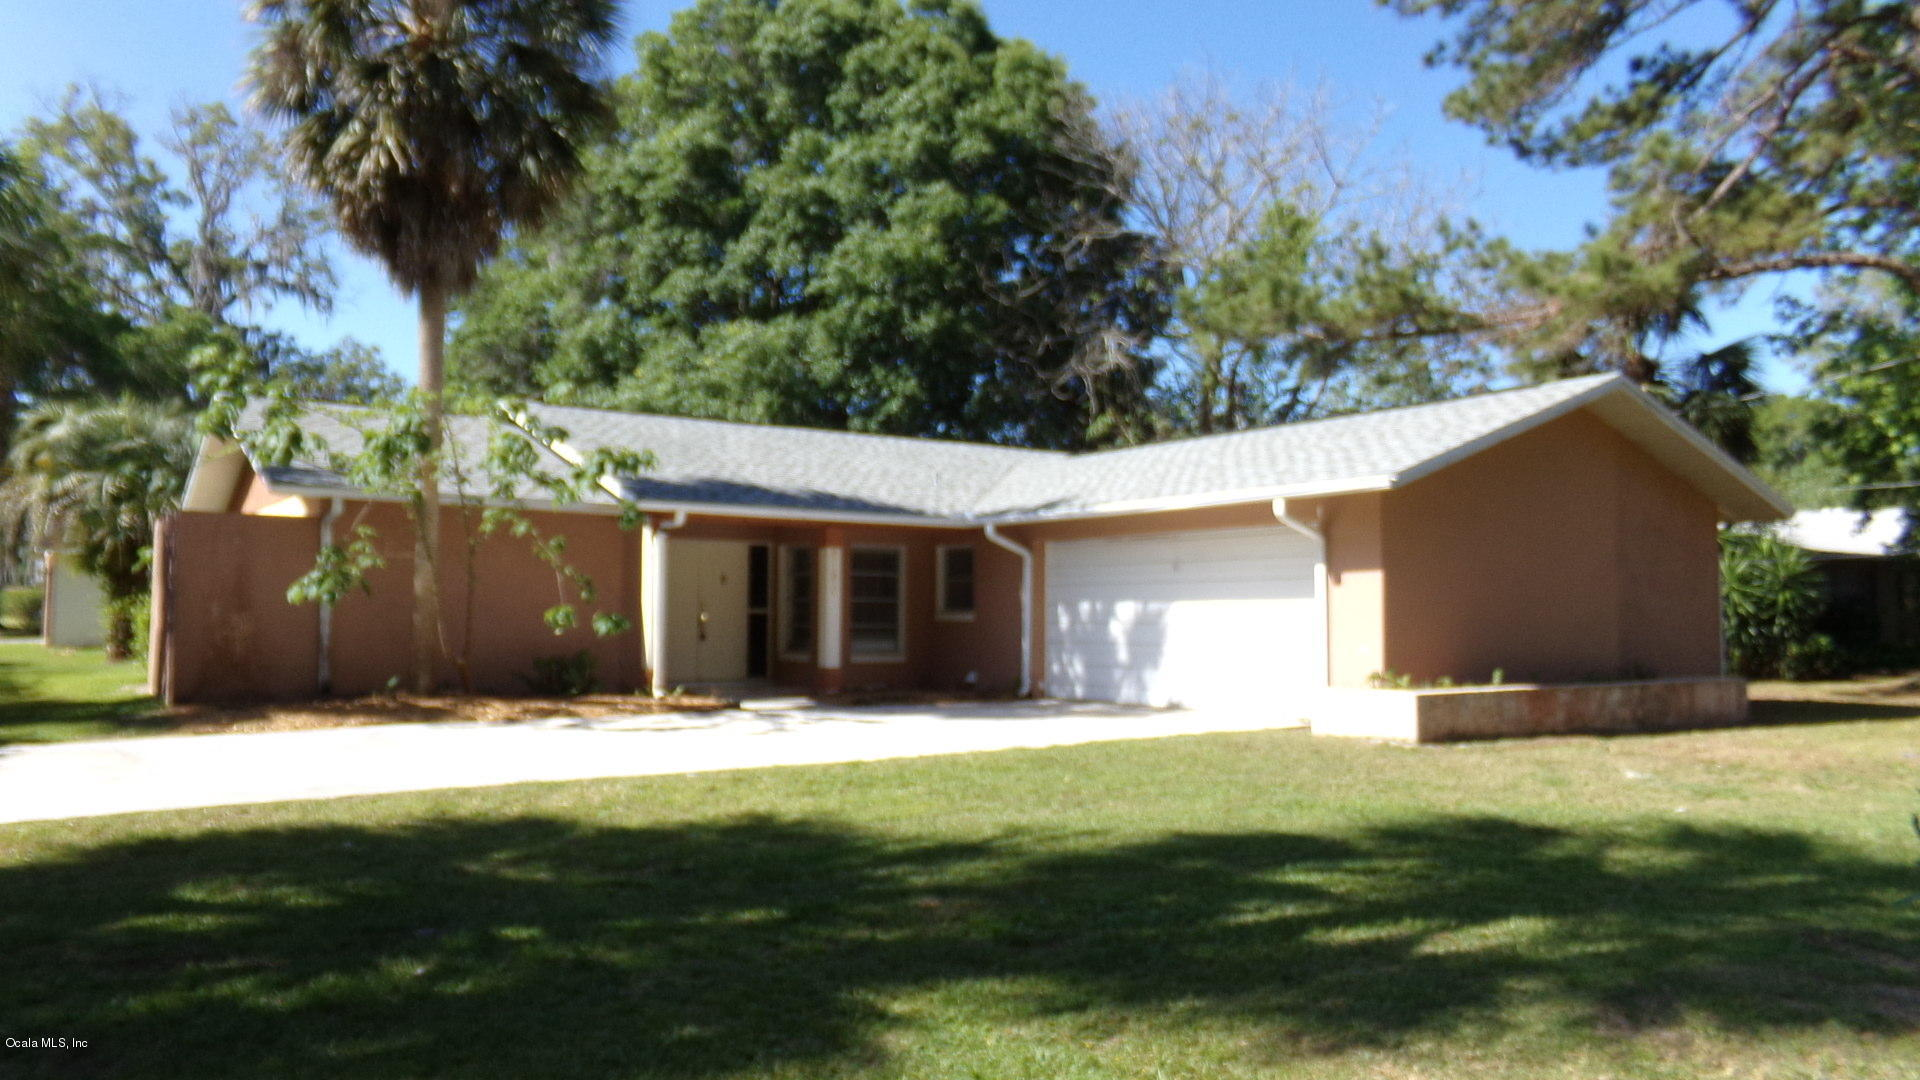 2190 SE 38TH STREET, OCALA, FL 34480